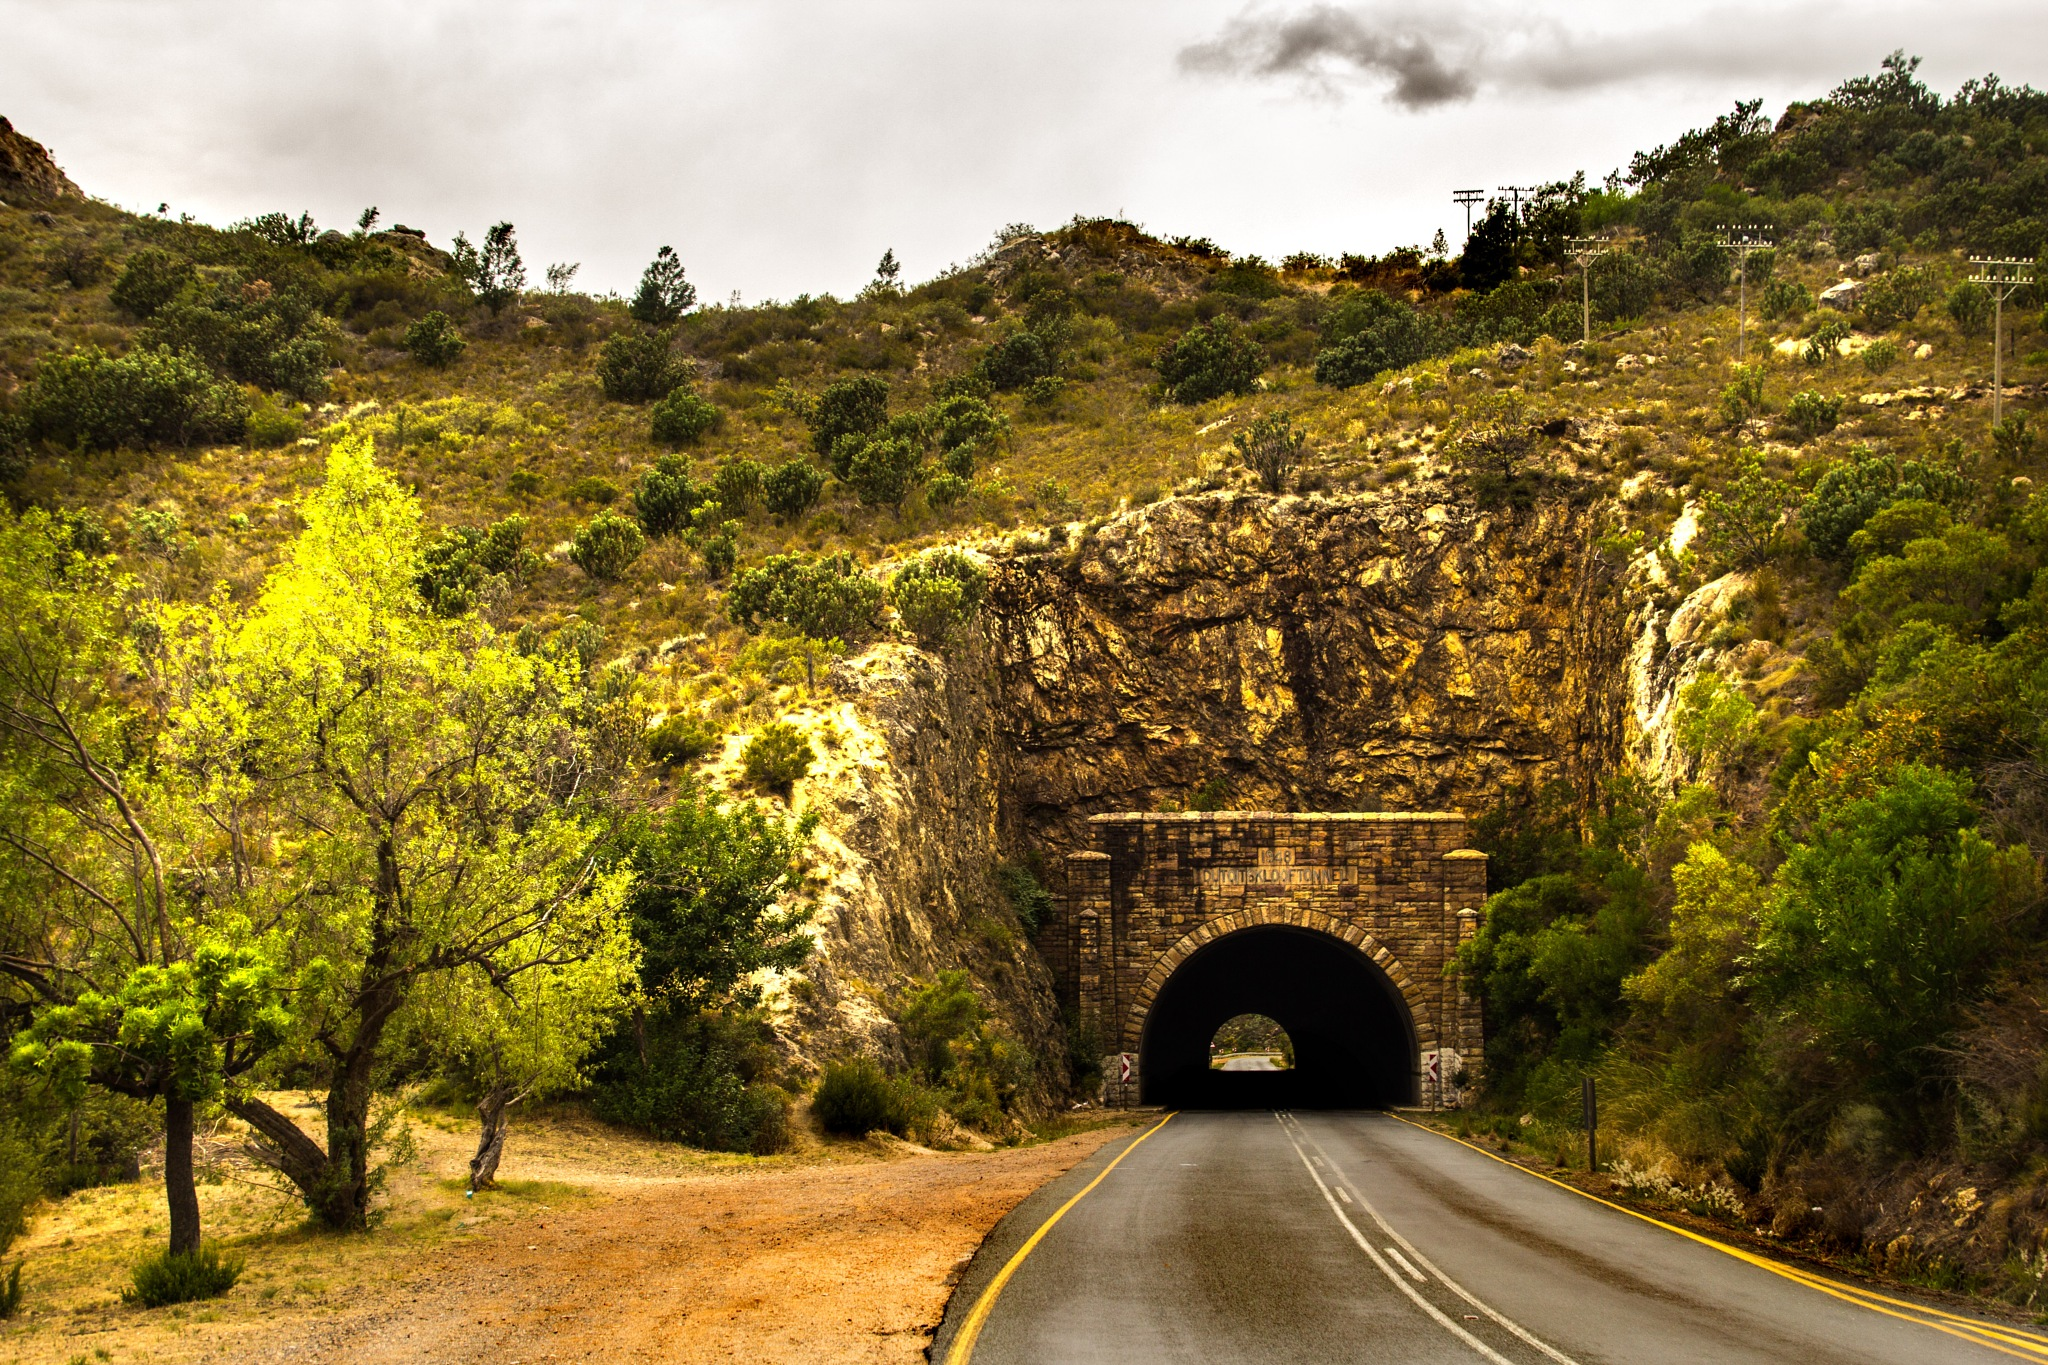 The old tunnel in Du Toit's kloof pass by Nauta Piscatorque